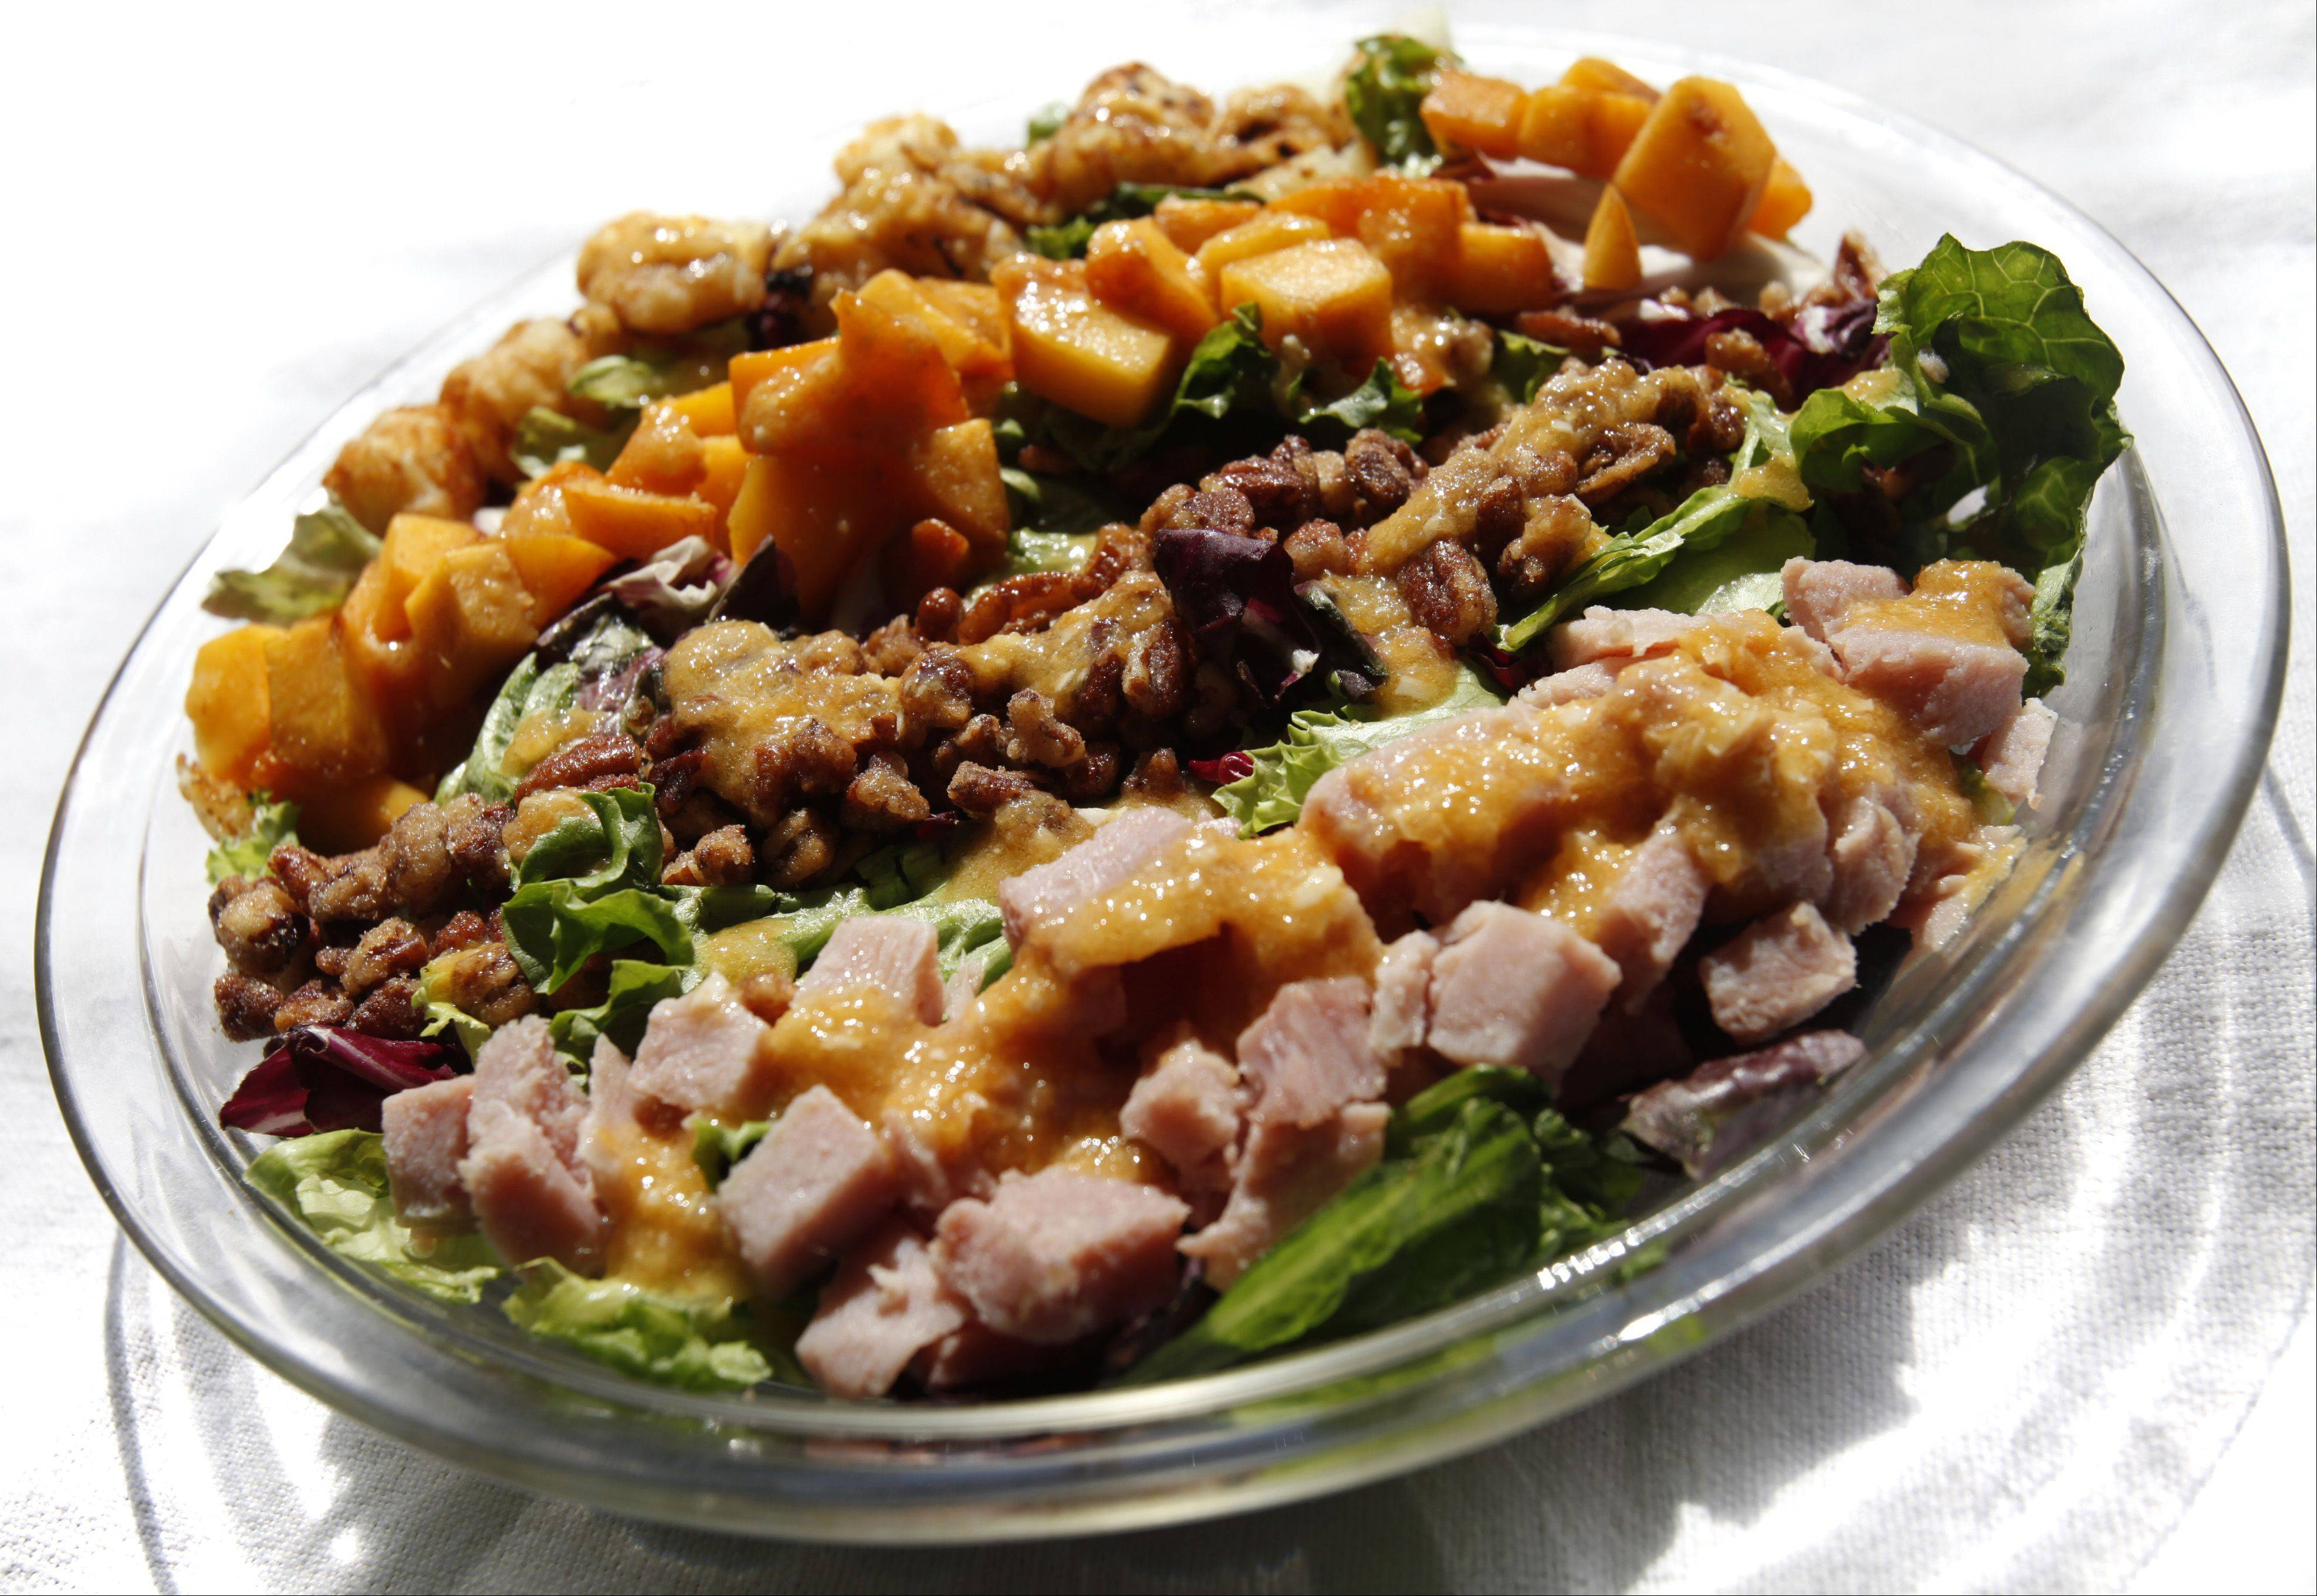 Mary Beth Thornton created a Cobb-style salad with ham, peaches, pecans and tater tots.